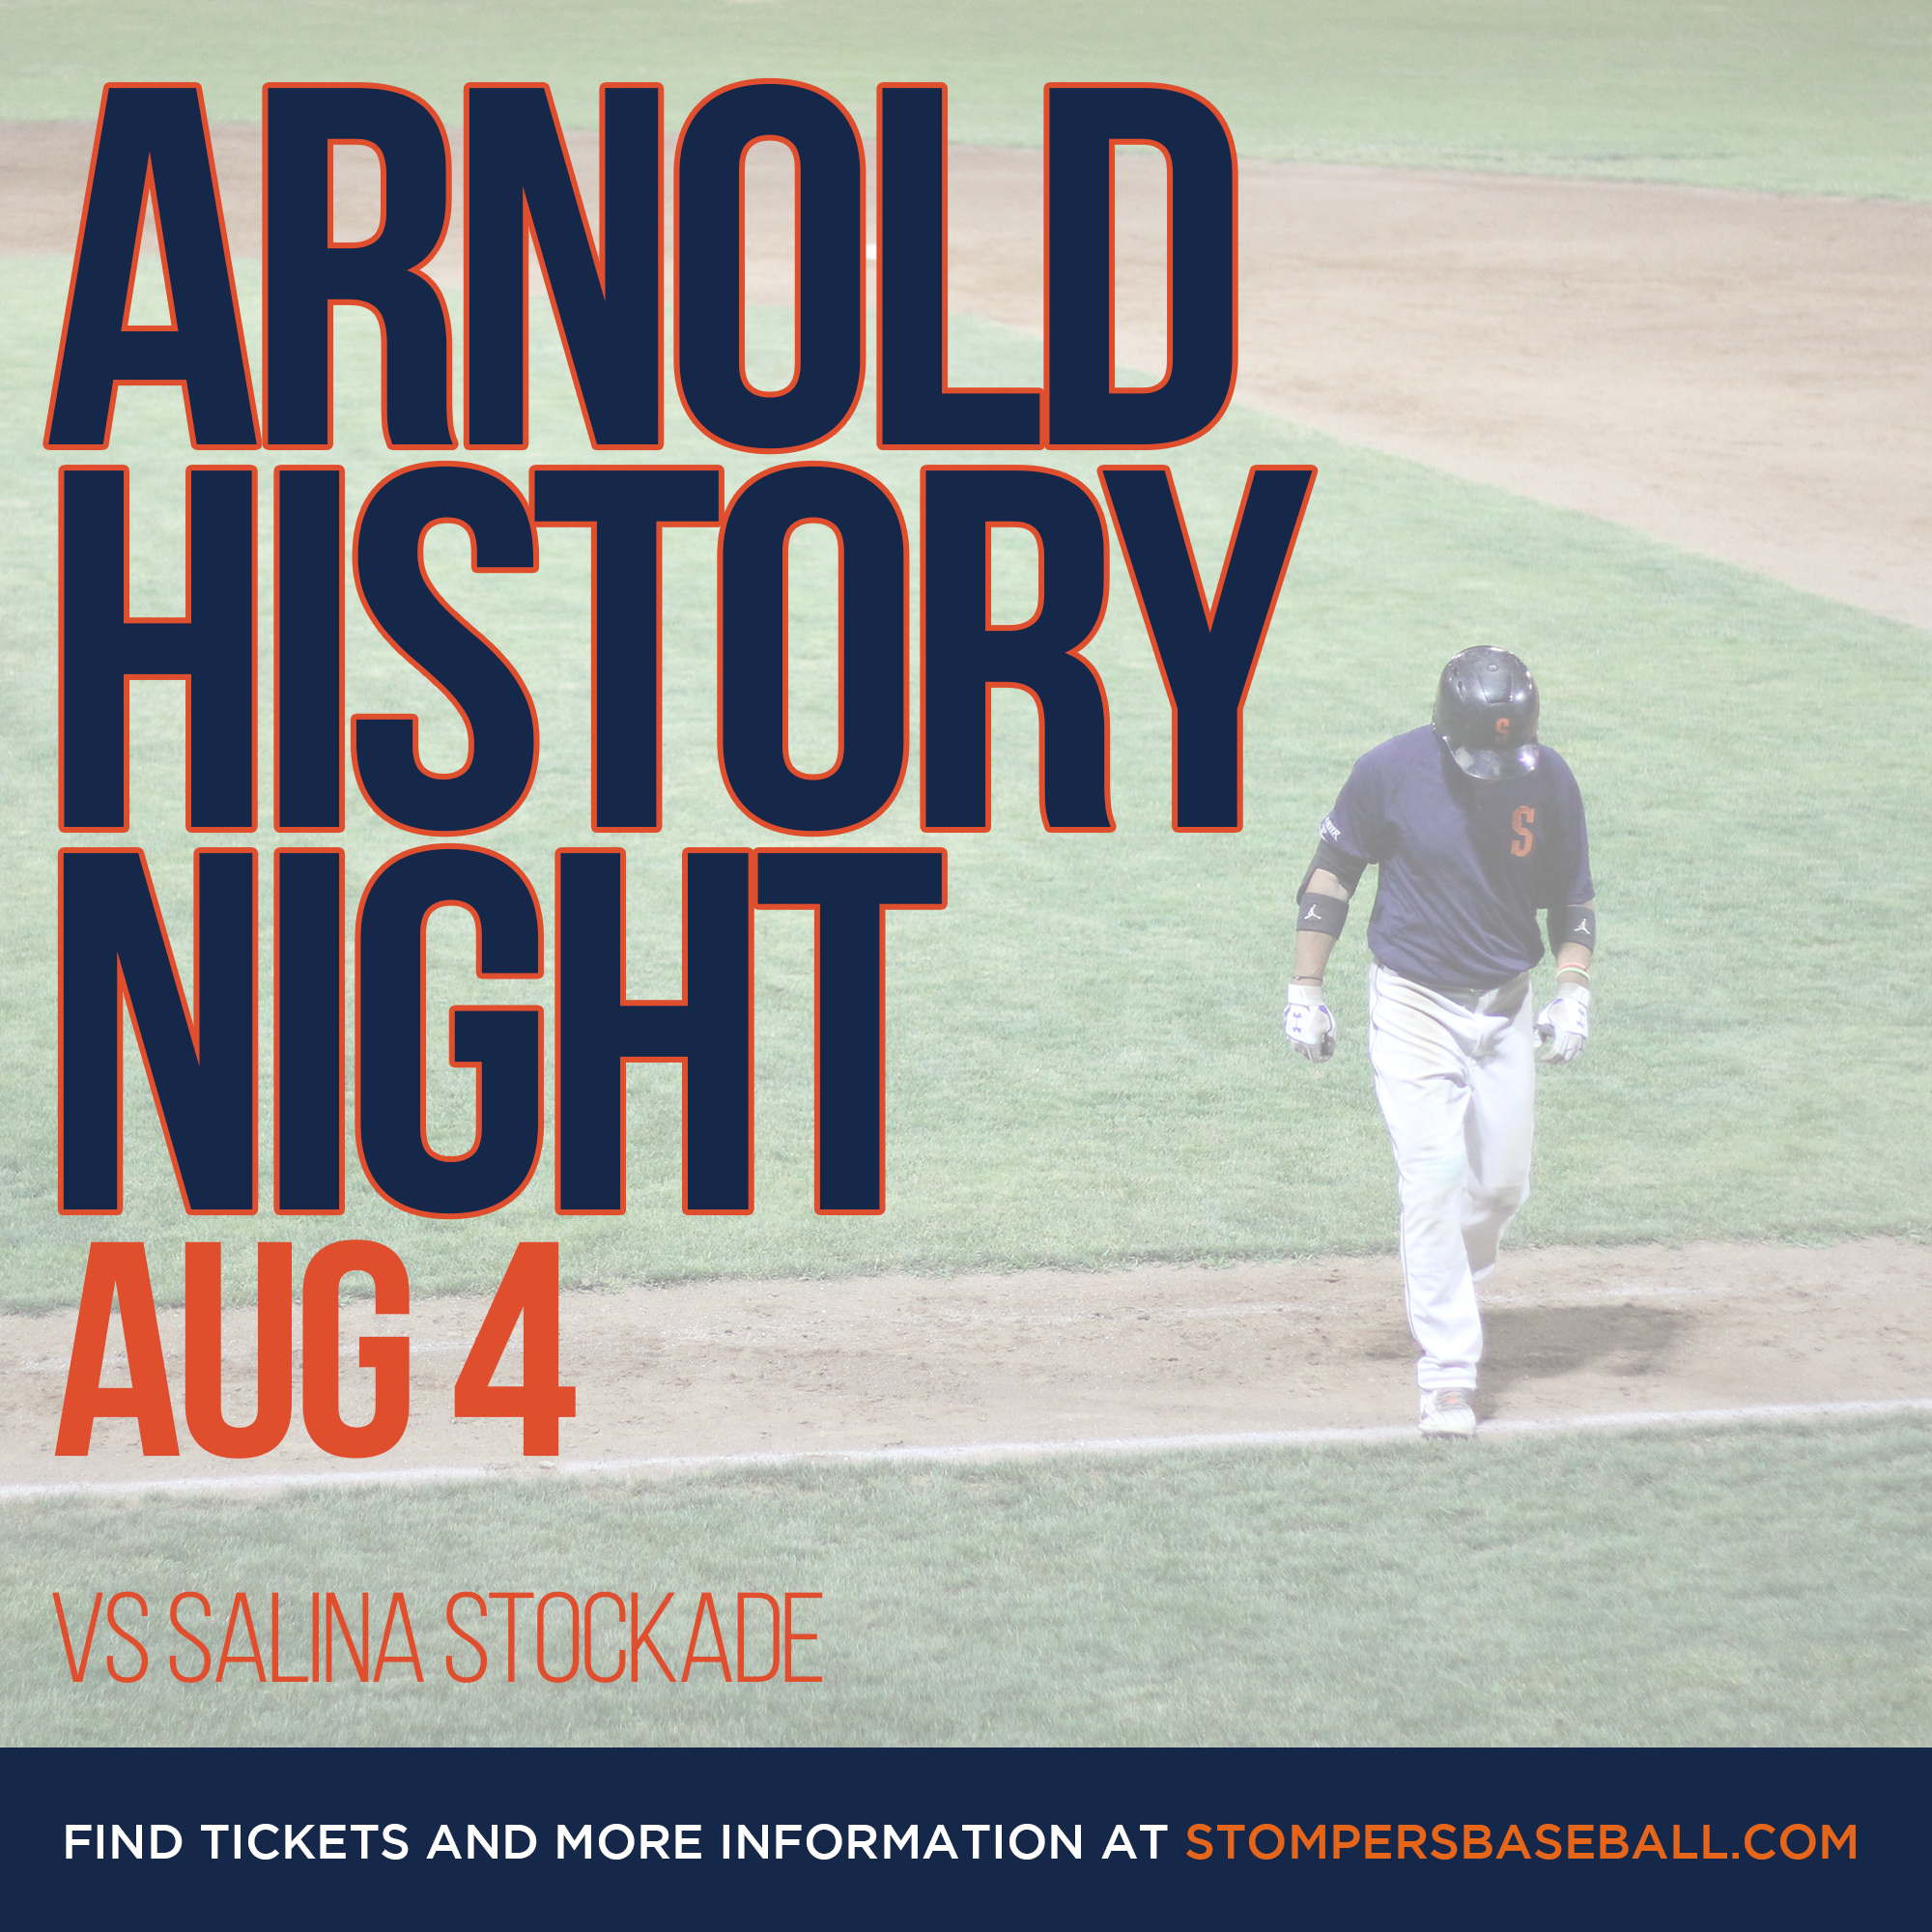 Aug 4: Arnold History Night - Arnold Field has a long history an the Stompers are honored to call it home. Come out and celebrate history that makes us proud to call it home!